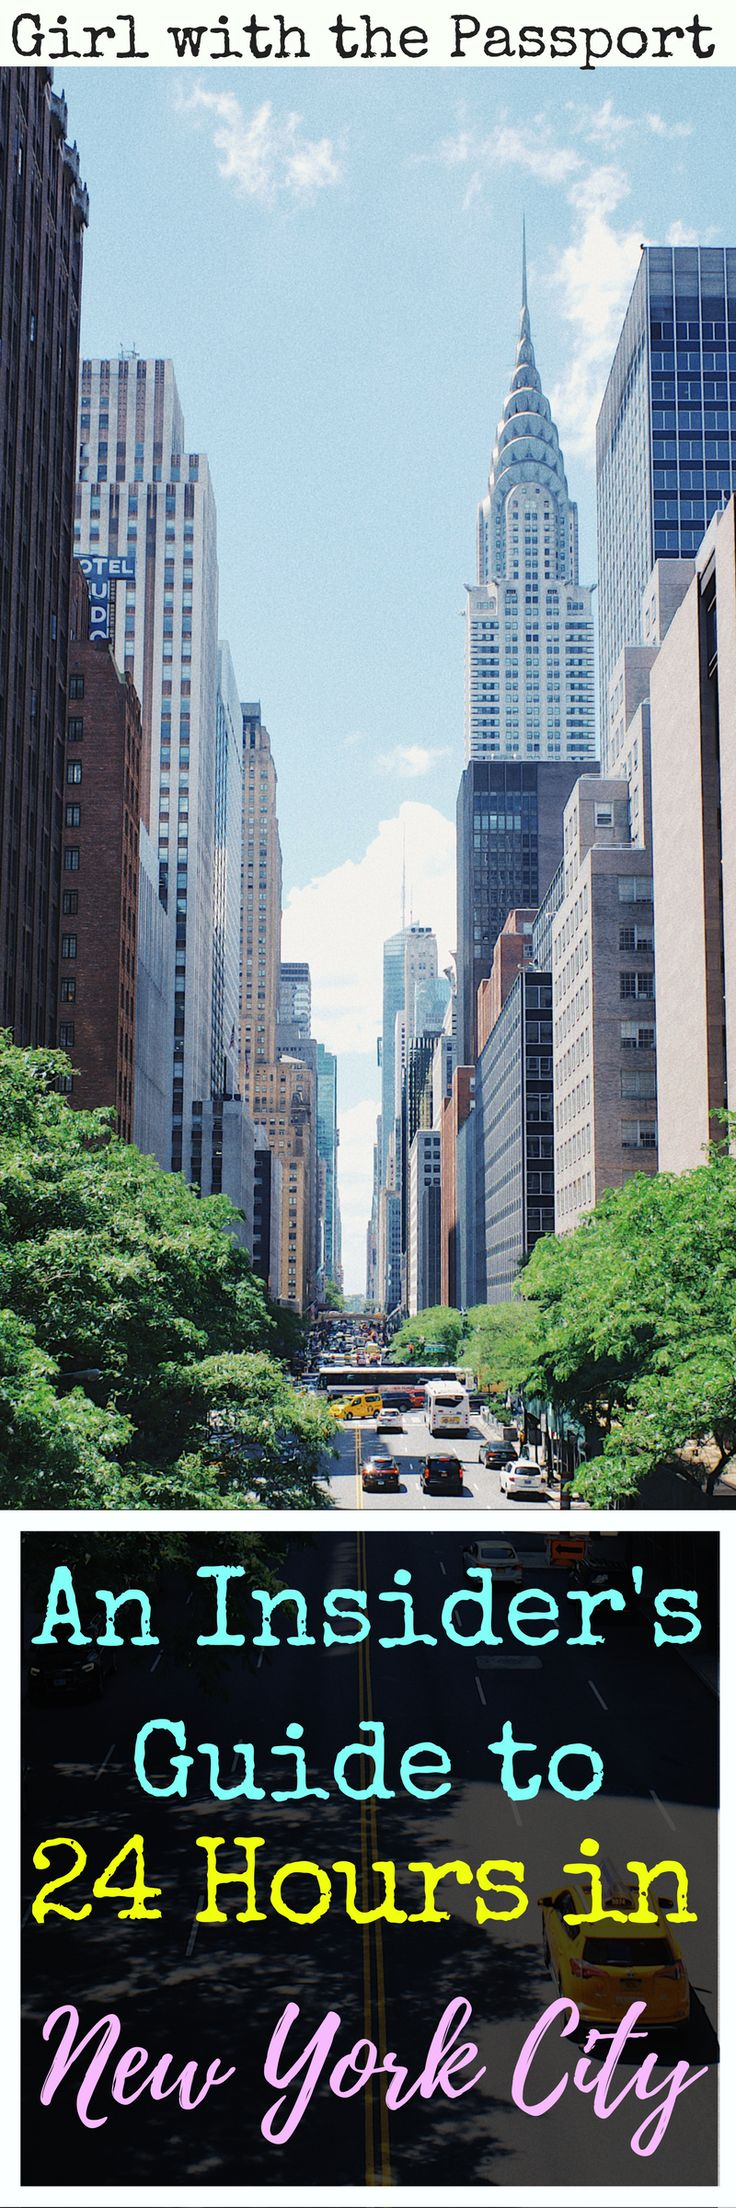 A local's #guide to spending a day in #newyorkcity. Find out all the tips, tricks, and travel #hacks that insider's use to make the most of their time in New York City. #wanderlust #USA #unitedStates #itinerary #planning